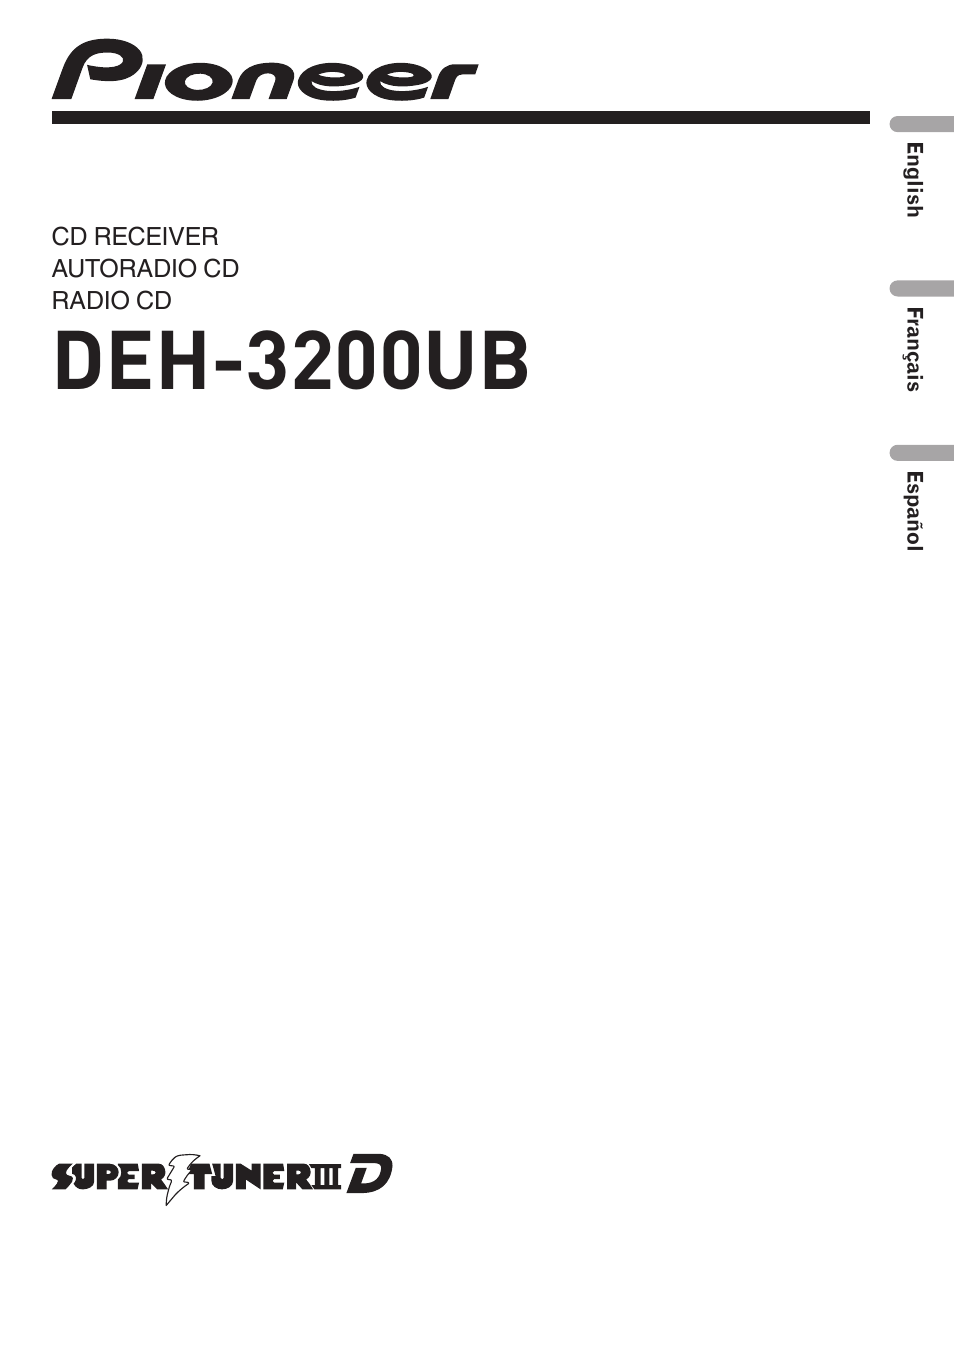 pioneer deh 3200ub user manual 80 pages rh manualsdir com pioneer radio deh-3200ub manual pioneer deh-3200ub wiring manual